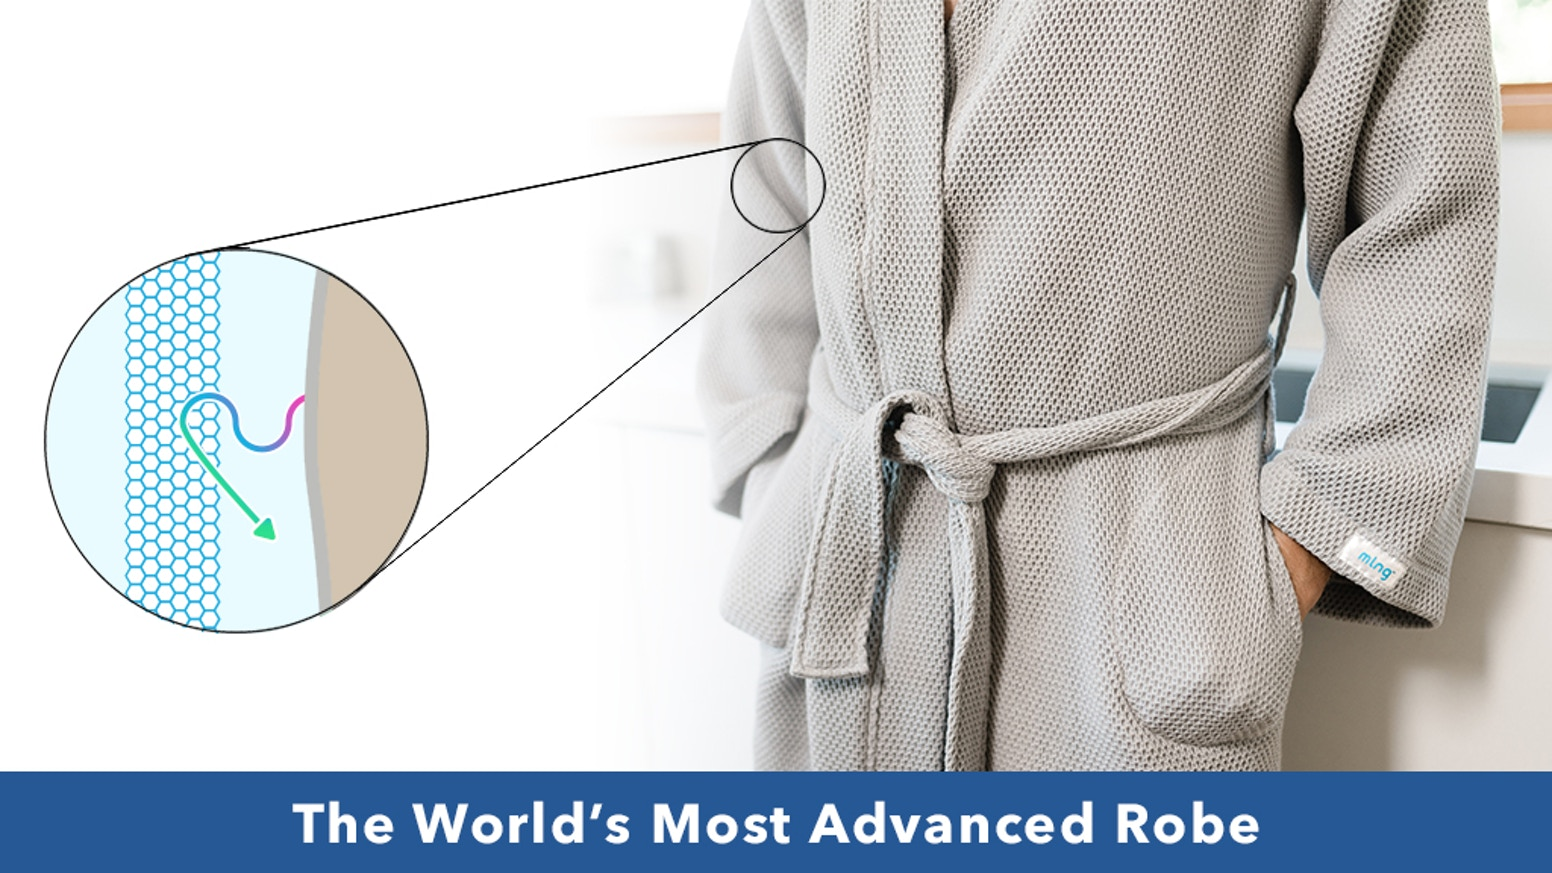 Achieve deep relaxation and faster recovery with Melange's new ultra comfy robe that is backed by science.